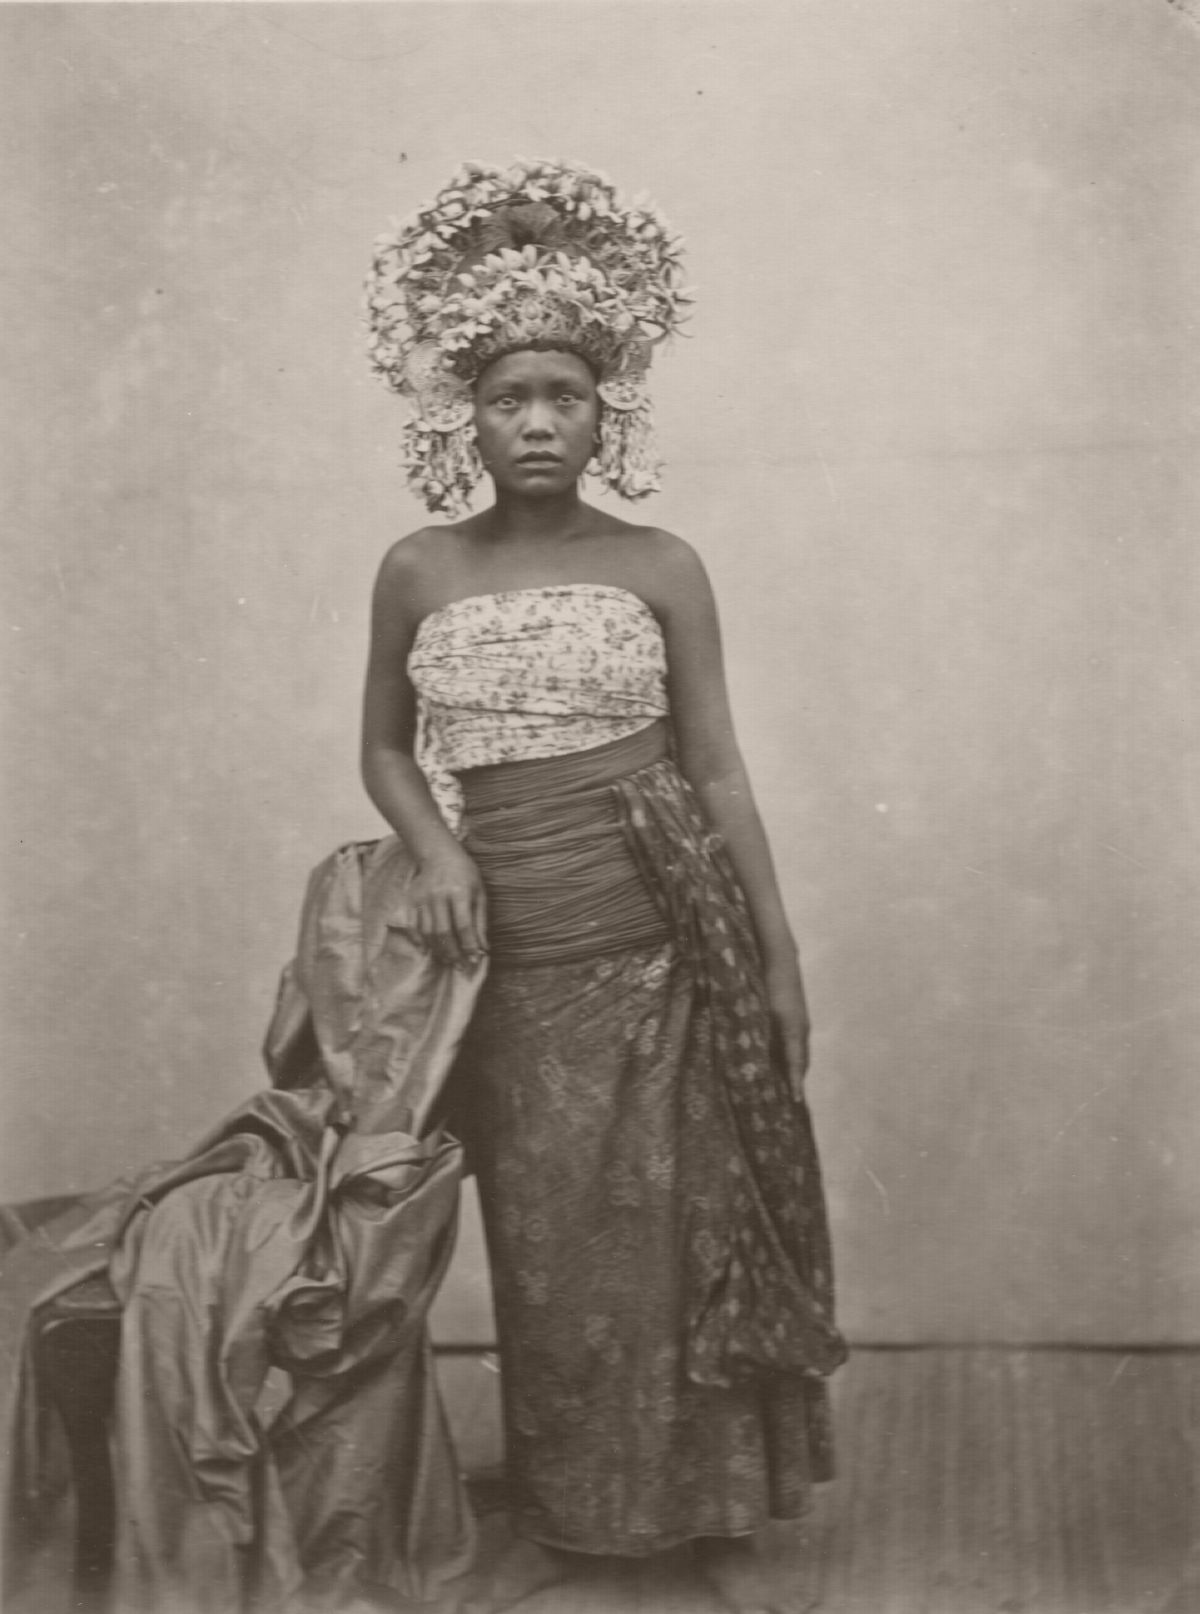 Balinese female dancer at Singaraja, between 1865 and 1866.